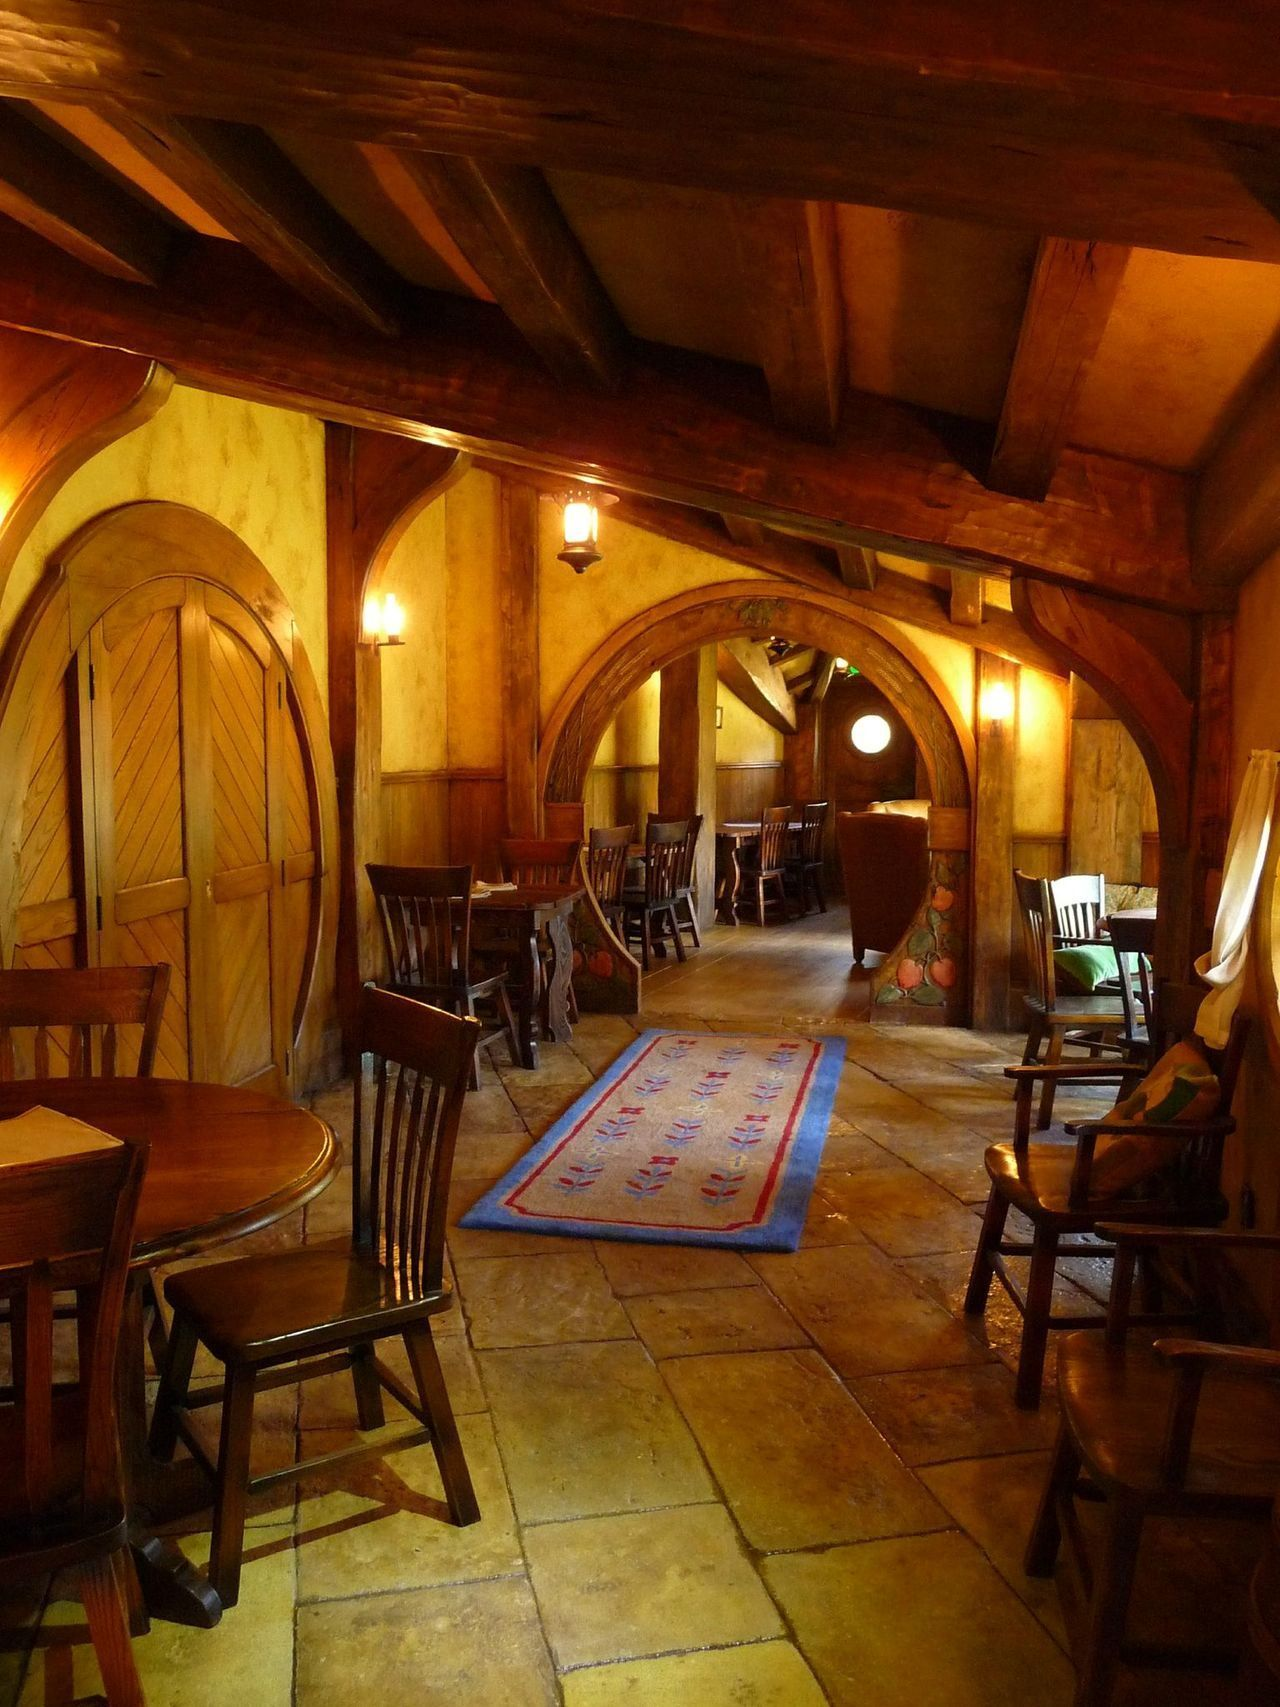 hobbit house 09 house ideas pinterest herr der ringe ringe und hobbit. Black Bedroom Furniture Sets. Home Design Ideas